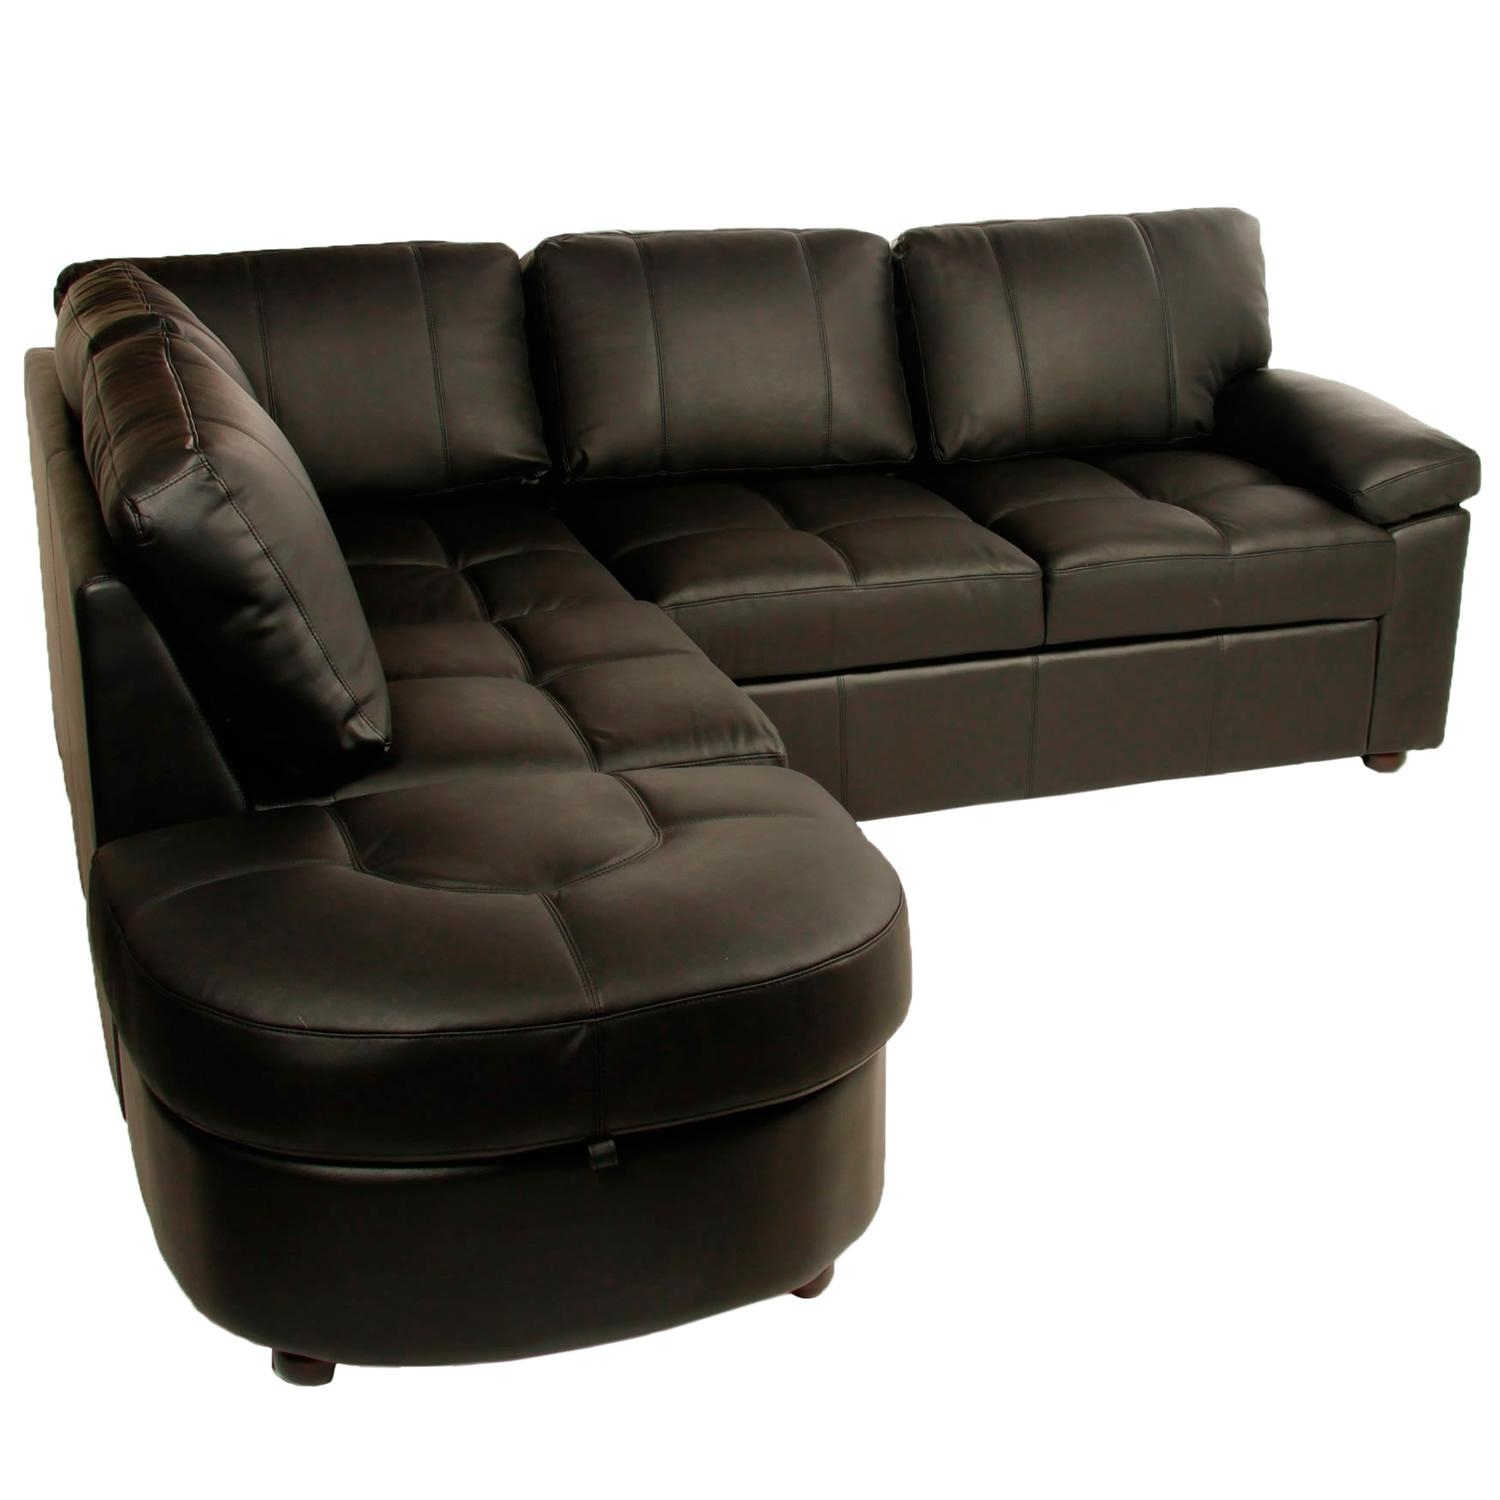 Siena Corner Leather Effect Sofa Bed With Storage Black